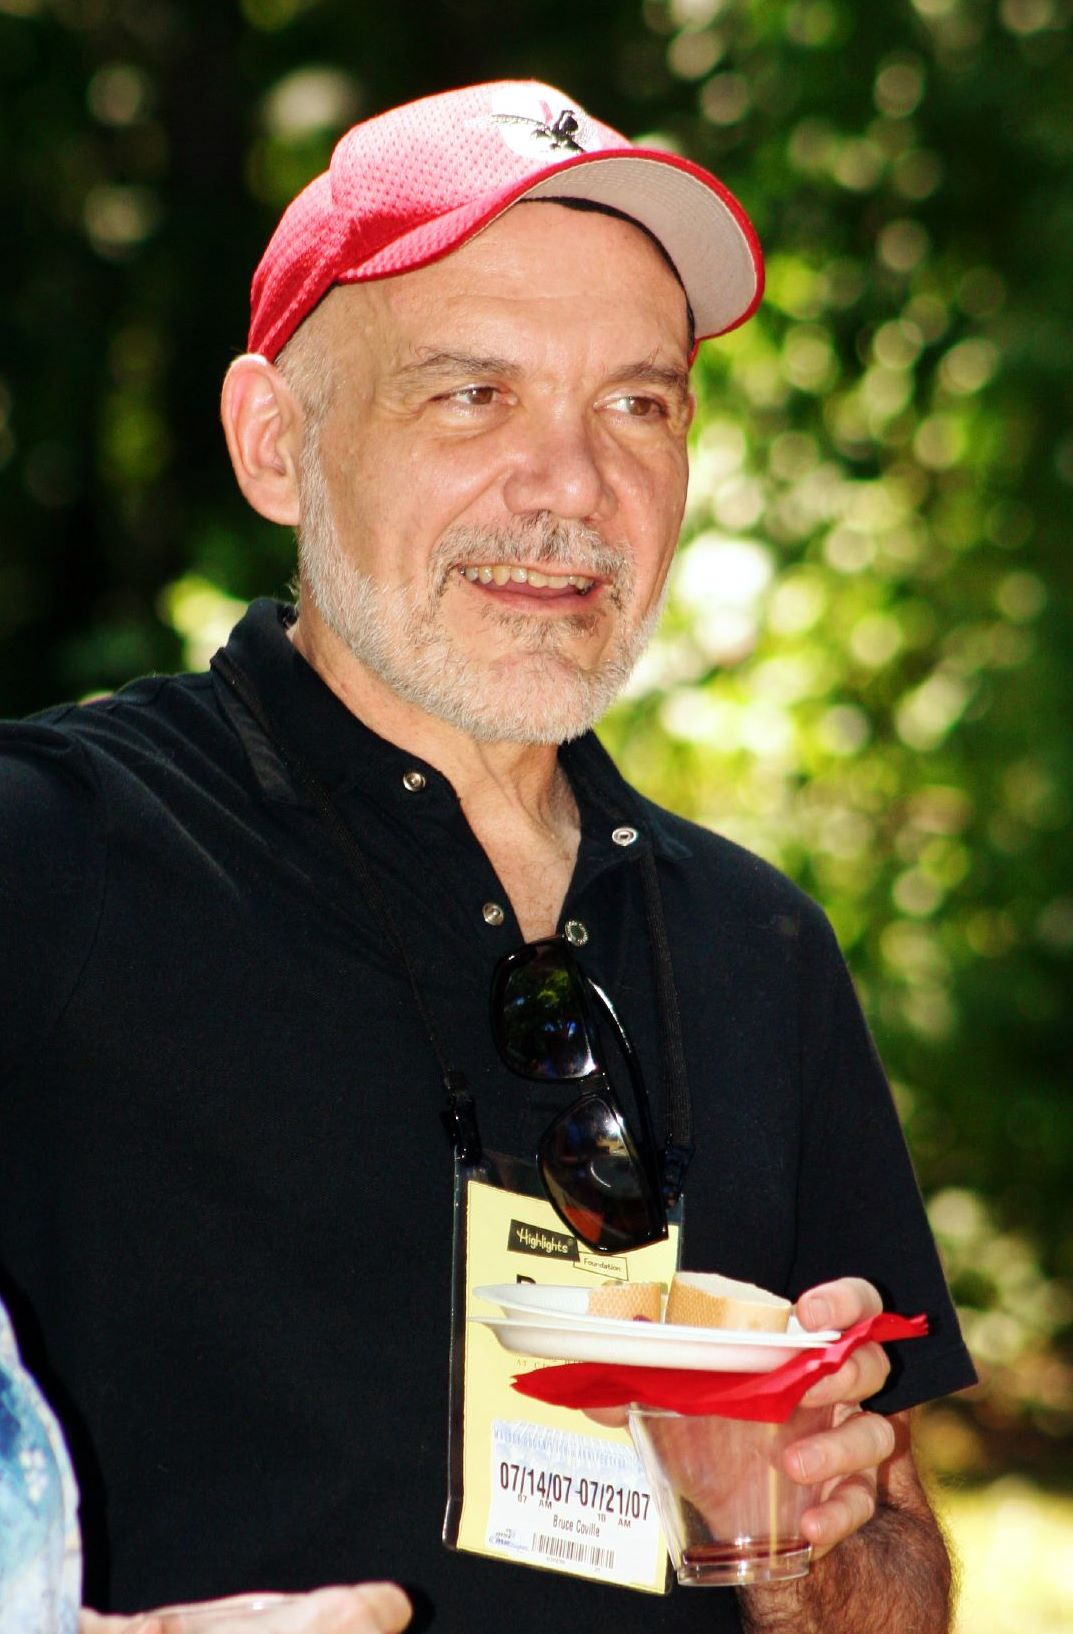 Coville in 2007